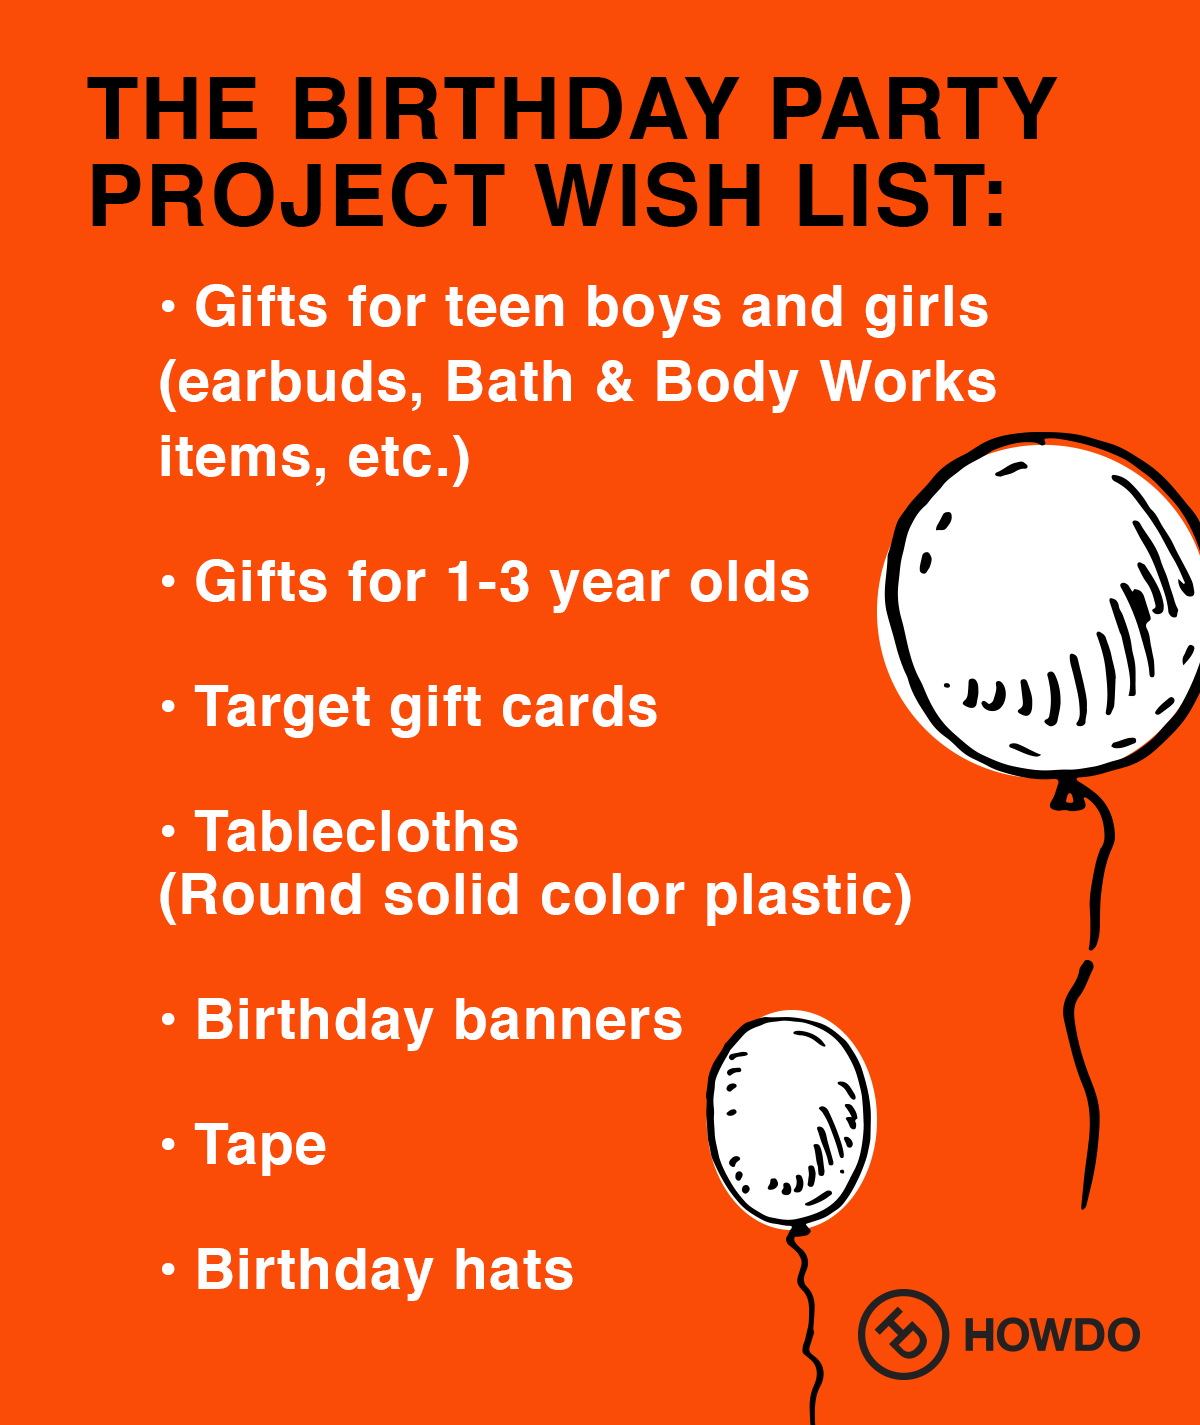 The Birthday Party Project Wish List